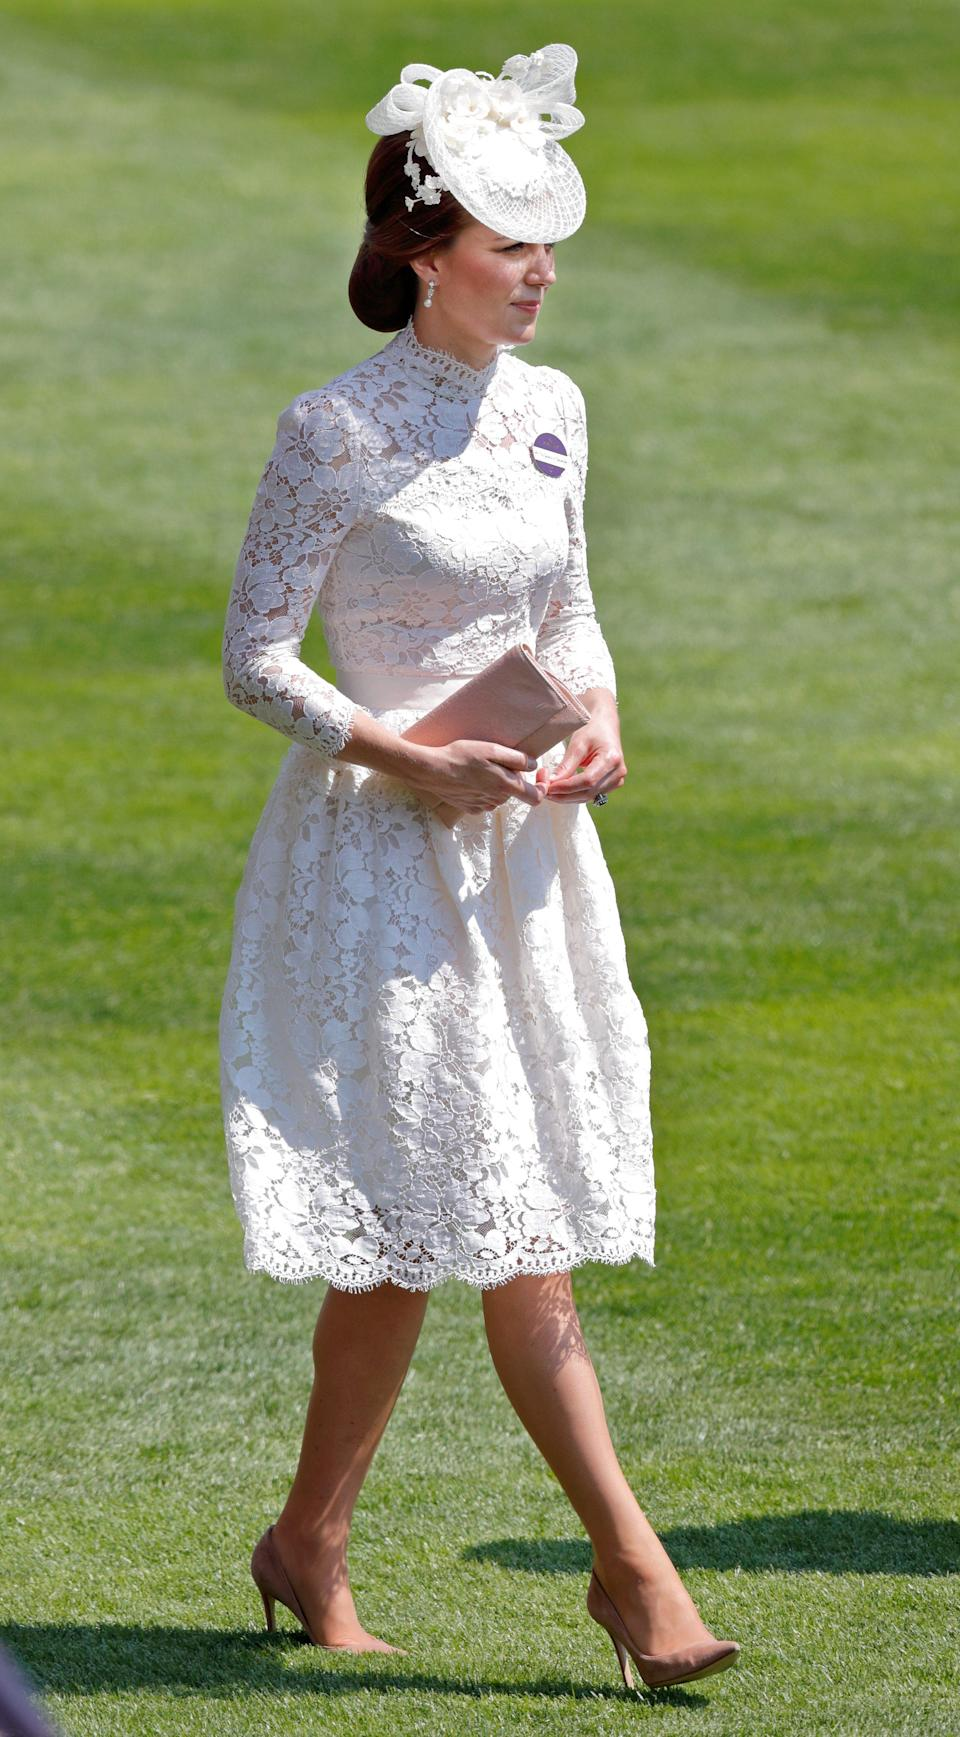 Catherine, Duchess of Cambridge attends day 1 of Royal Ascot - Max Mumby